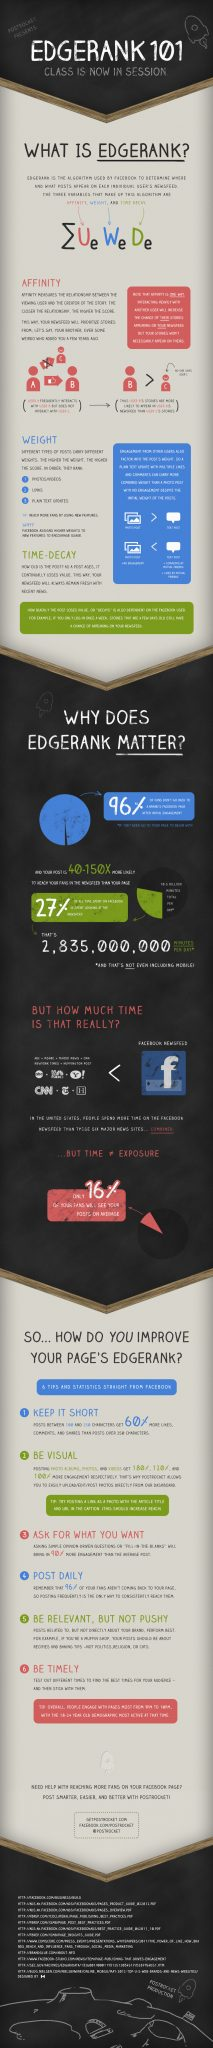 Facebook Newsfeed Algorithm - How Edgerank Works Infographic